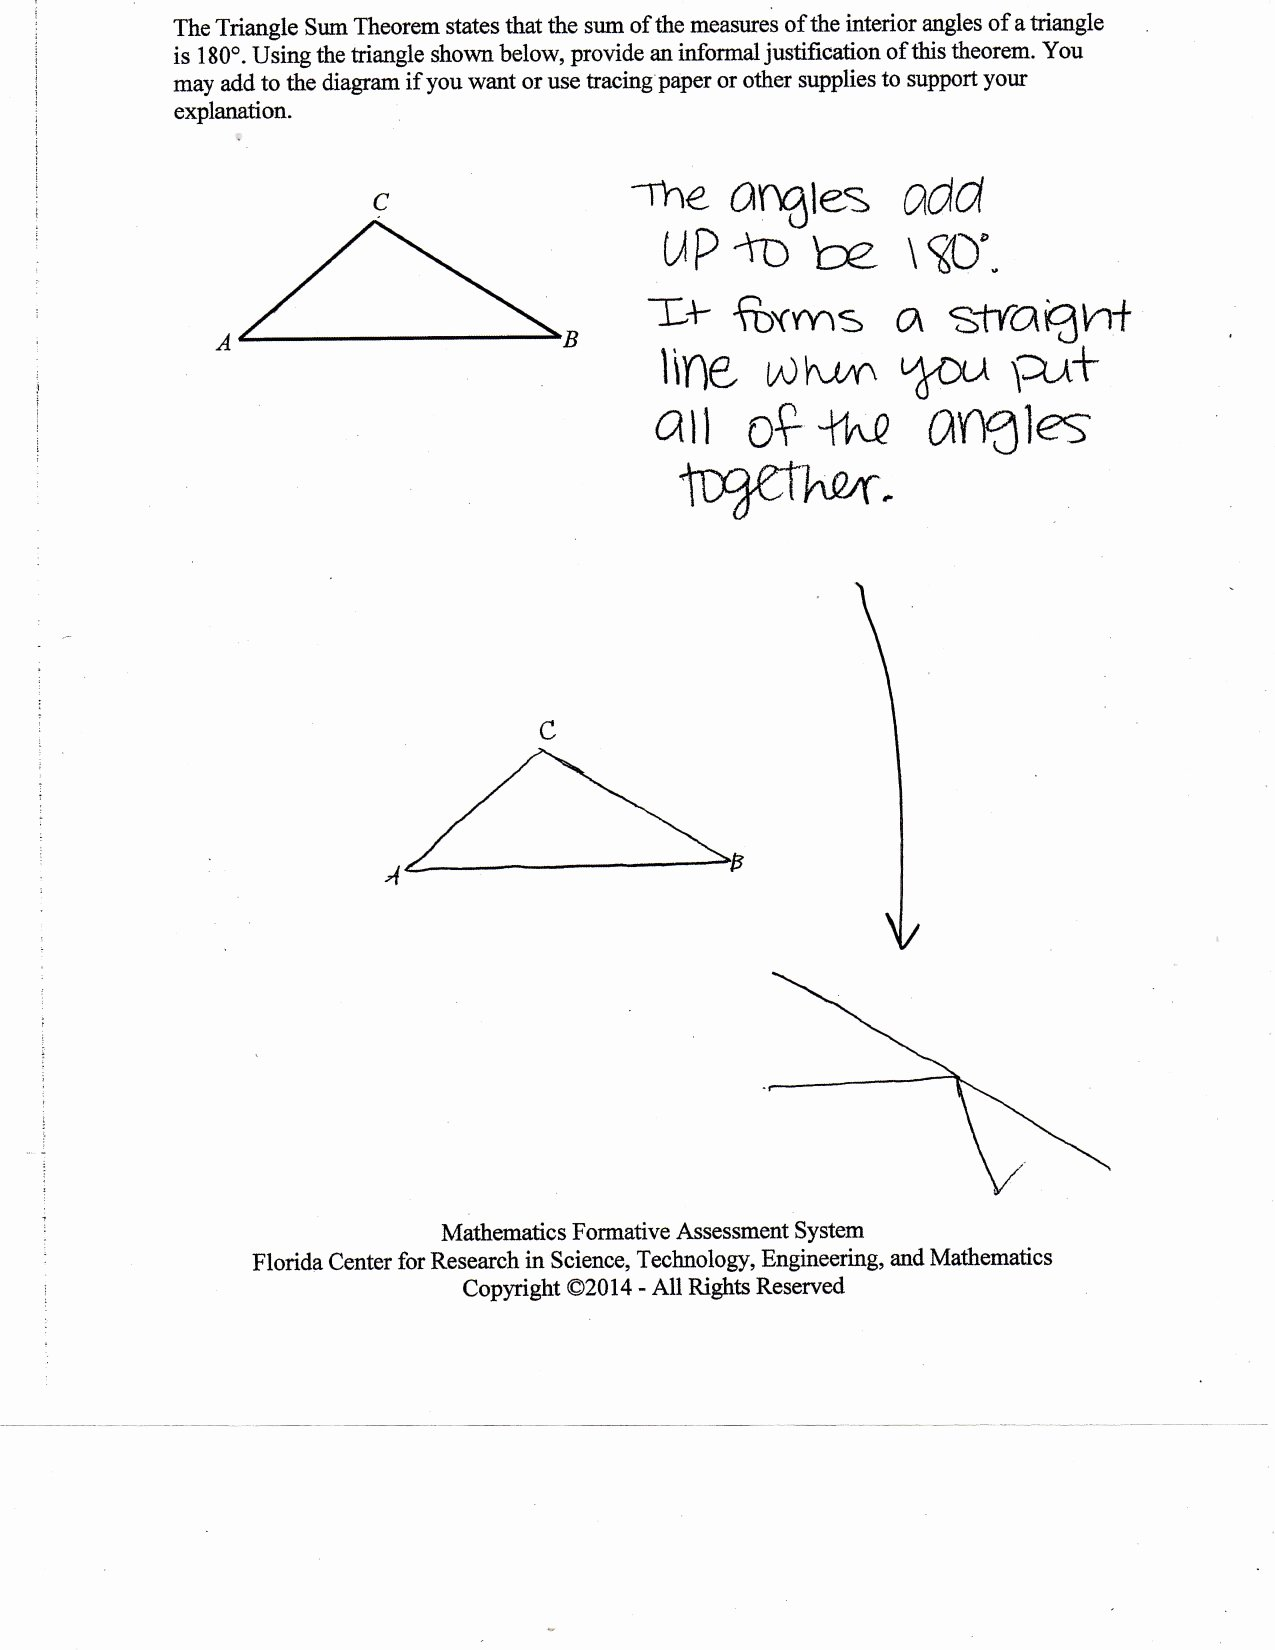 Triangle Angle Sum Worksheet Answers Beautiful Justifying the Triangle Sum theorem